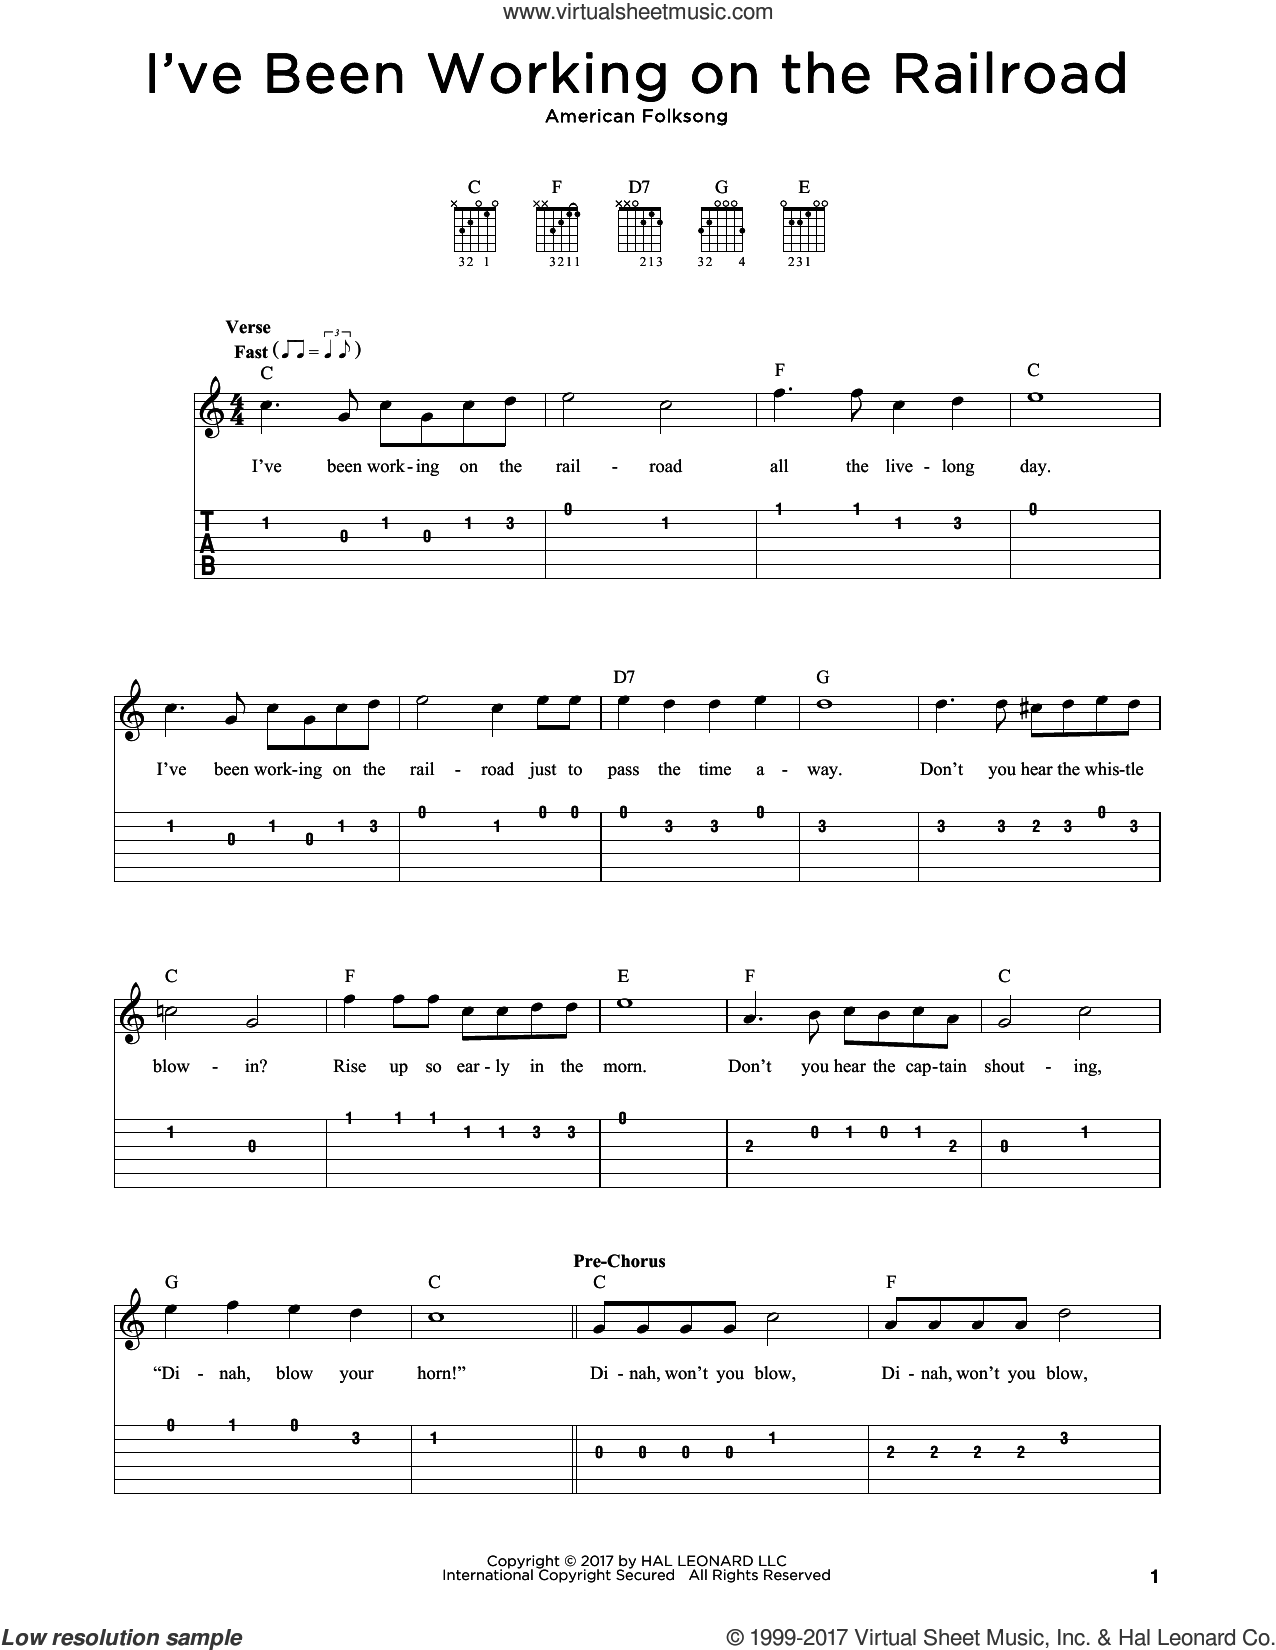 I've Been Working On The Railroad sheet music for guitar solo by American Folksong, intermediate skill level